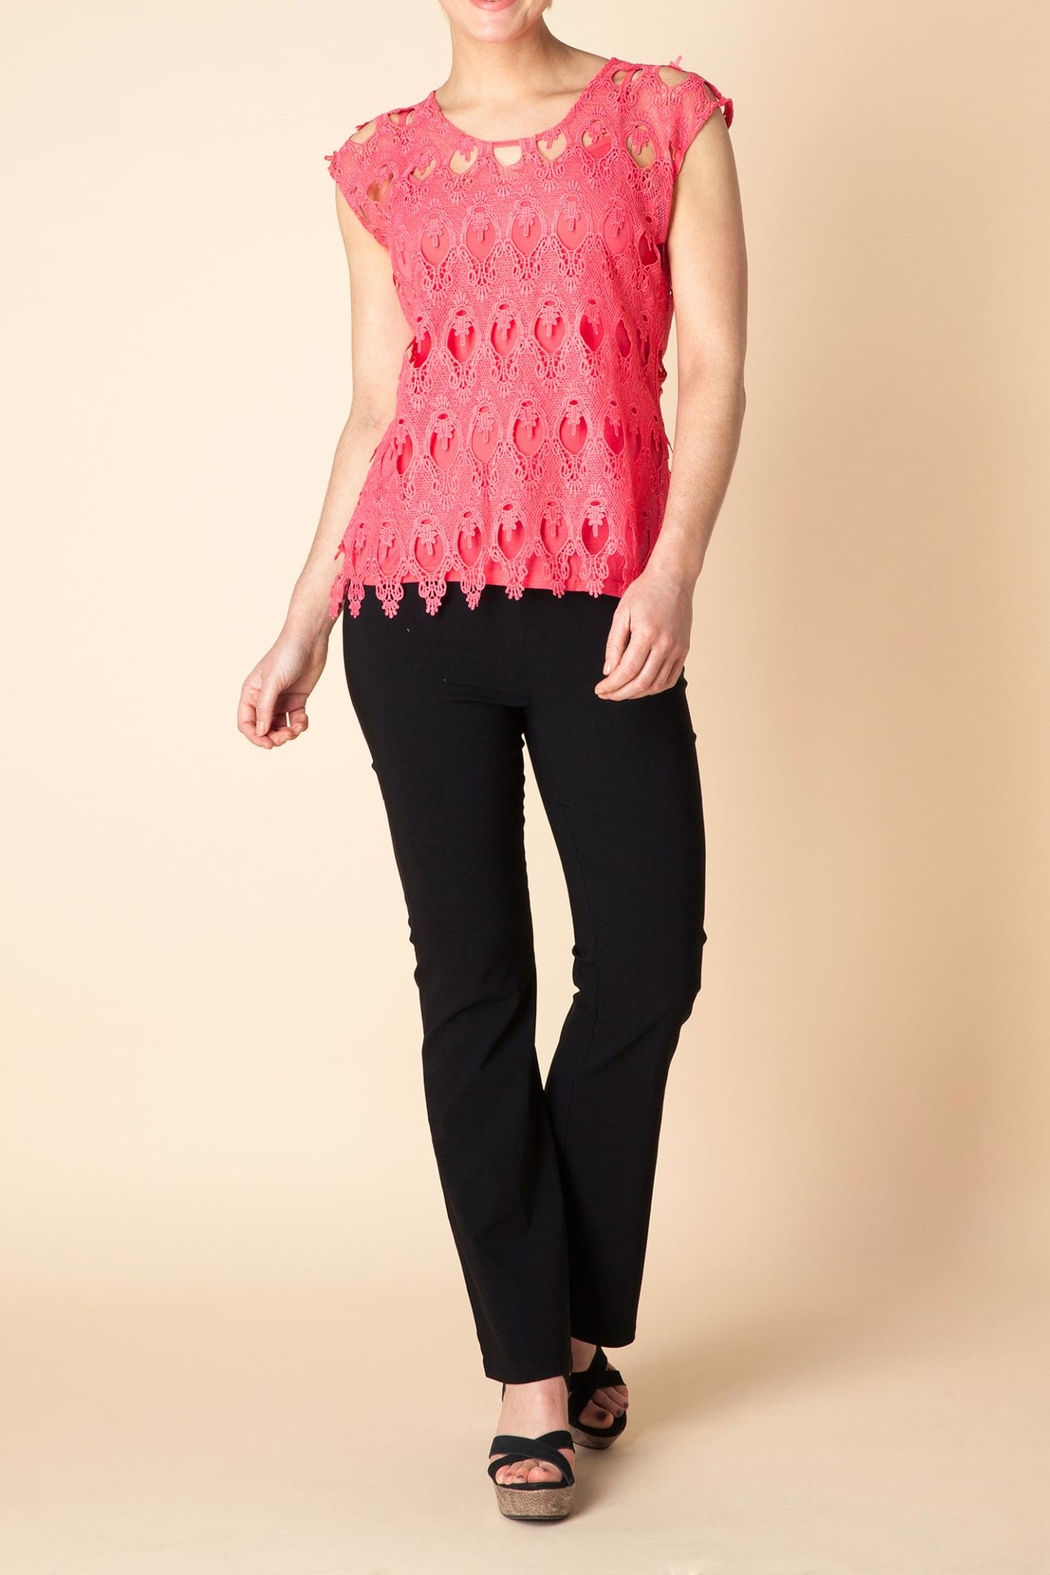 Yest Flamingo Lace Blouse - Main Image